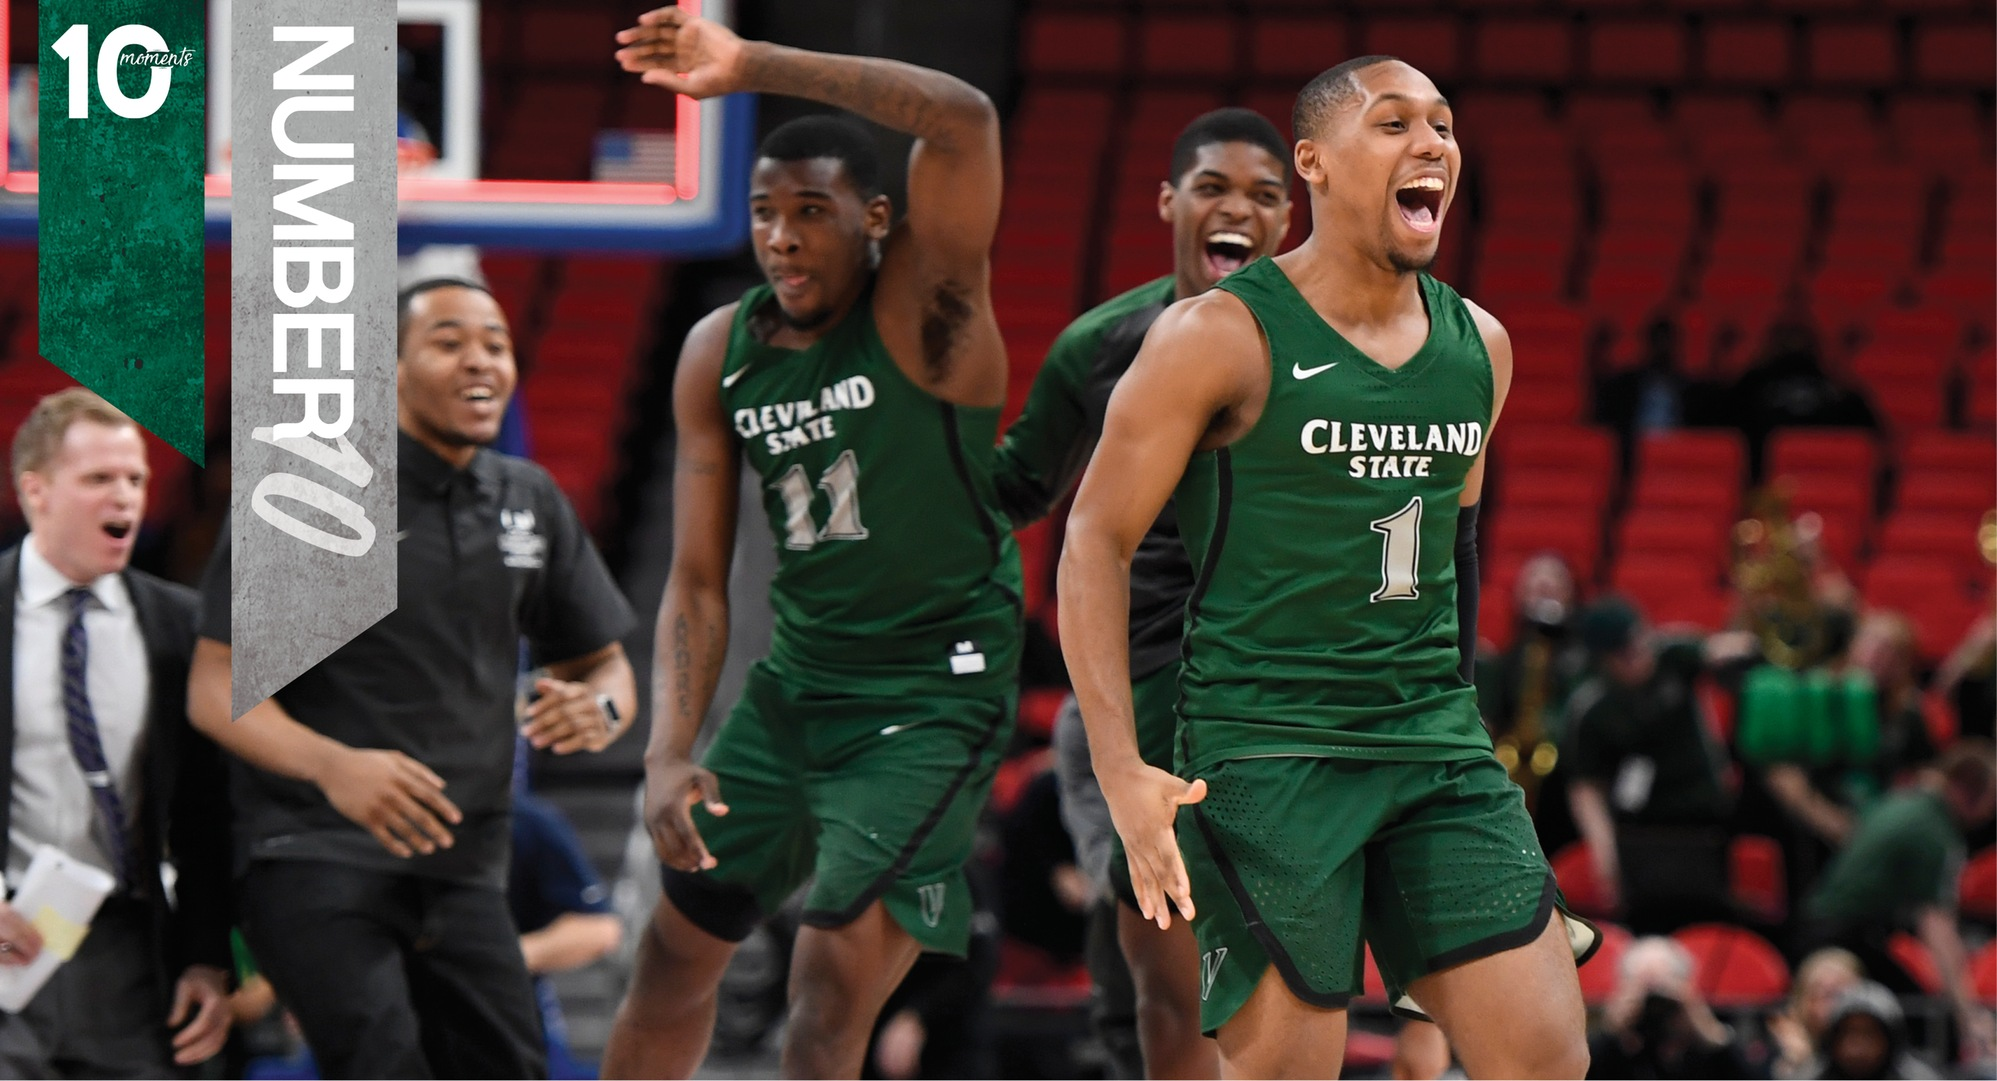 2017-18 CSU Athletics Top 10 Moments | #10 - Men's Basketball Advances to Horizon League Championship Game